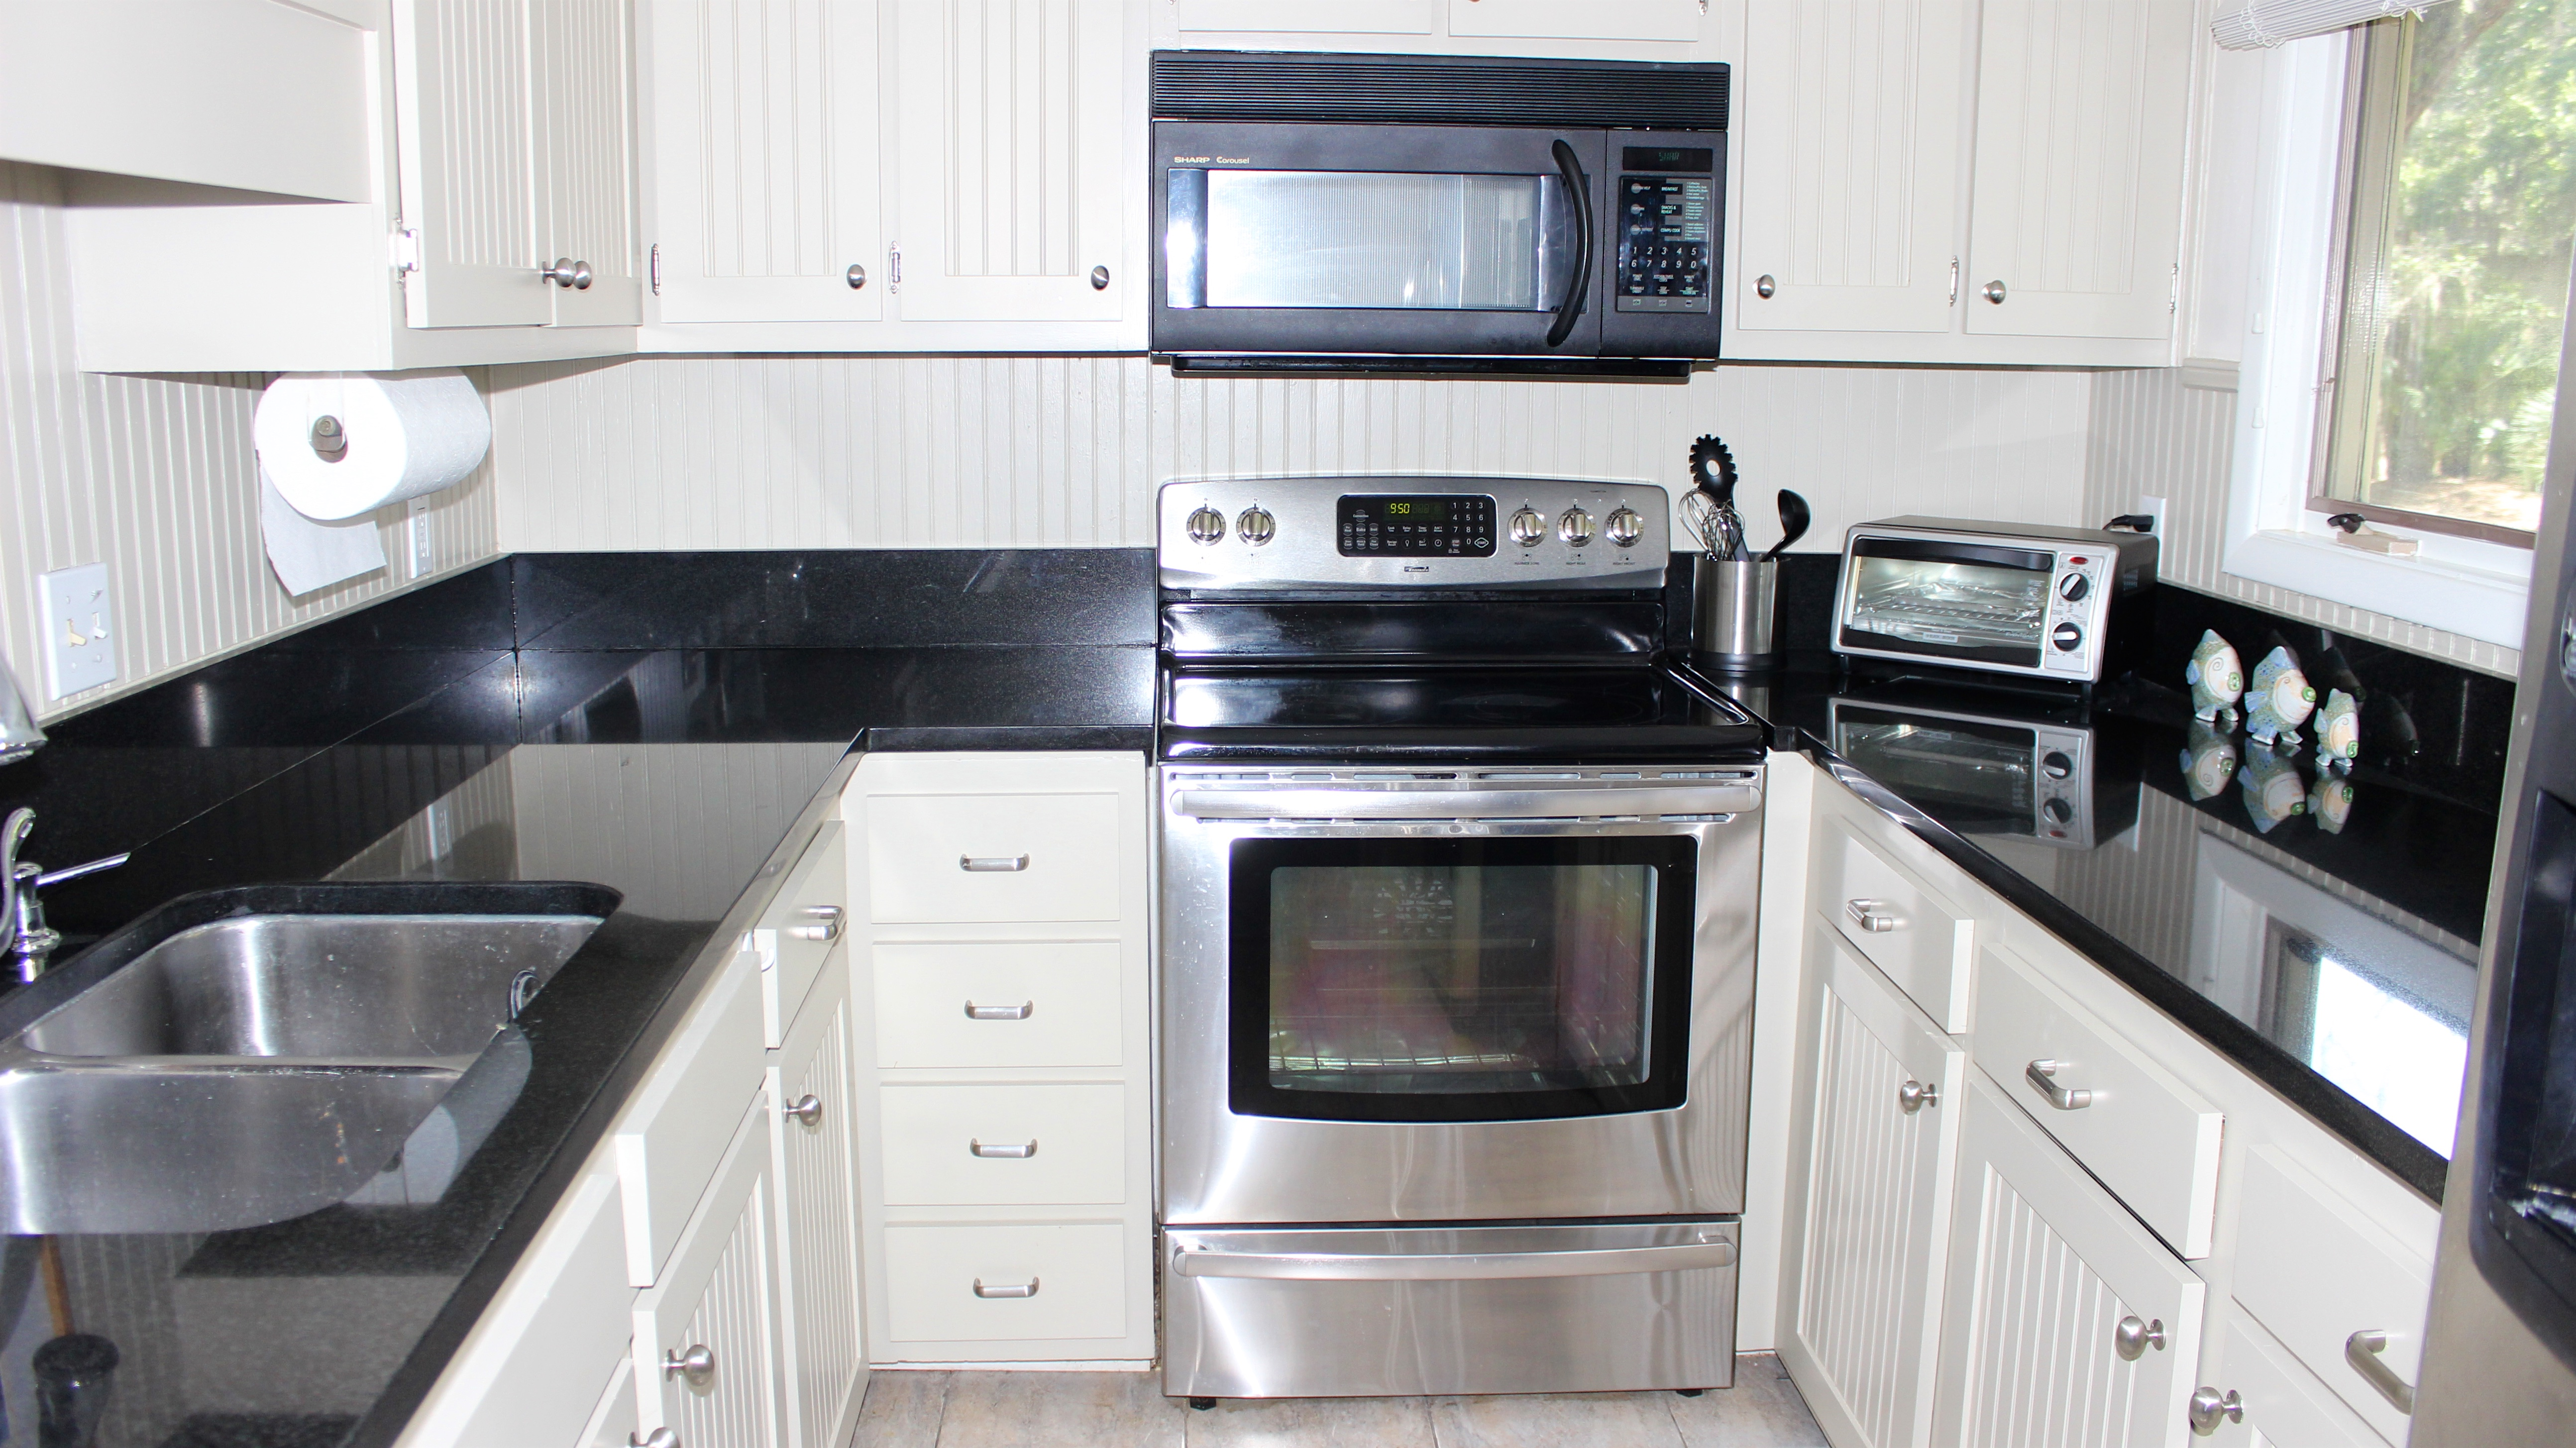 The updated kitchen has dark granite counters and white cabinetry.